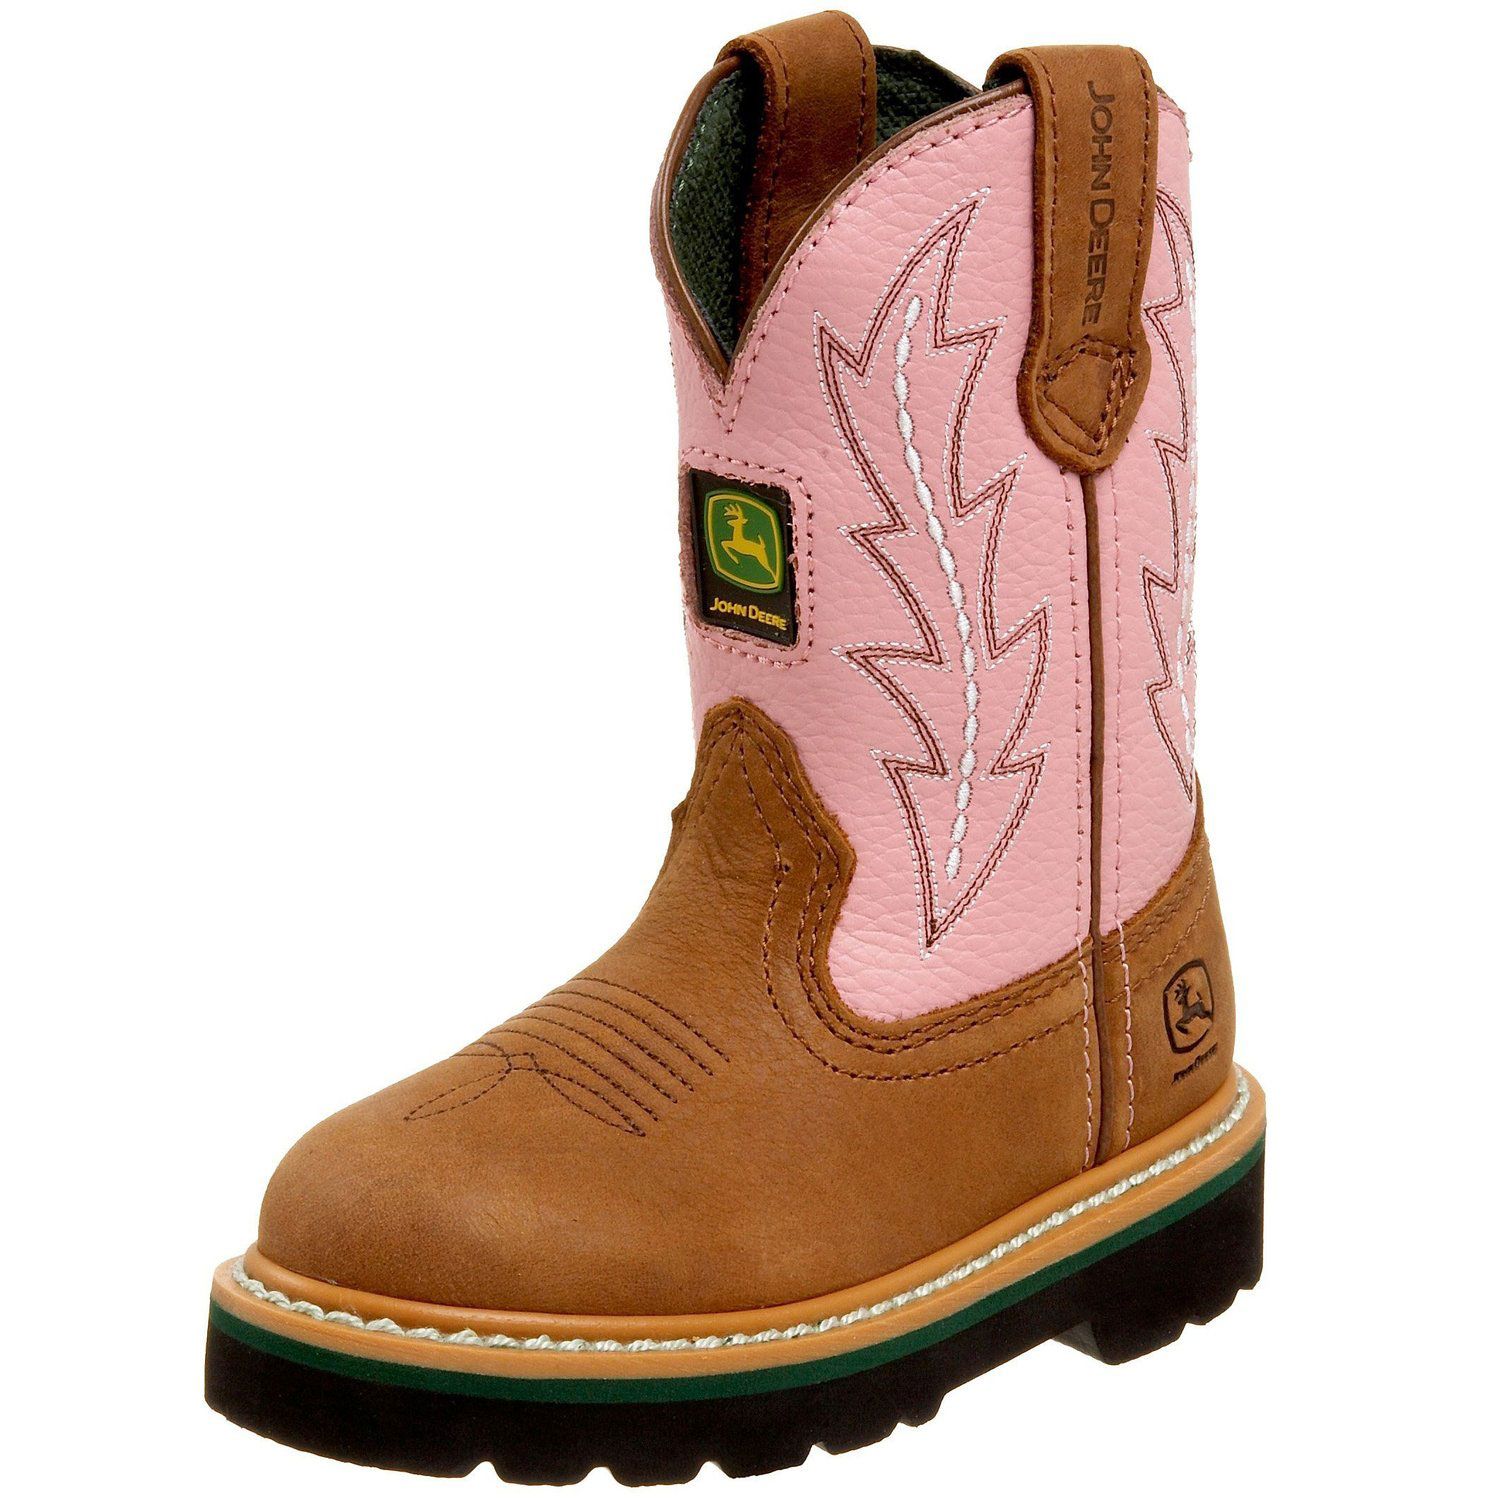 ... John Deere Children's Wellington Boots are made of waterproof leather